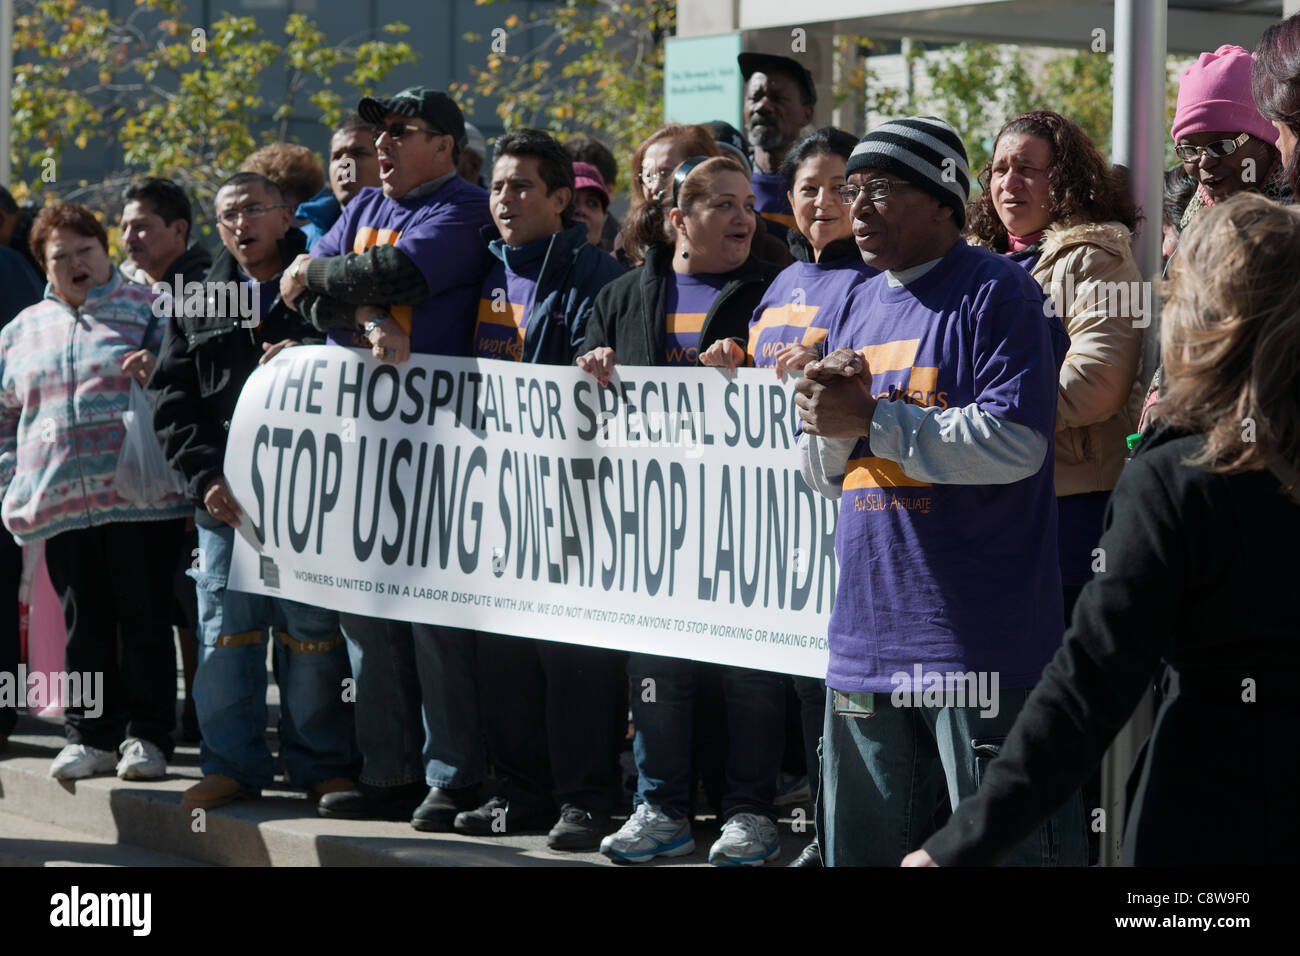 Laundry workers protest alleged sweatshop conditions by hospital subcontractor - Stock Image